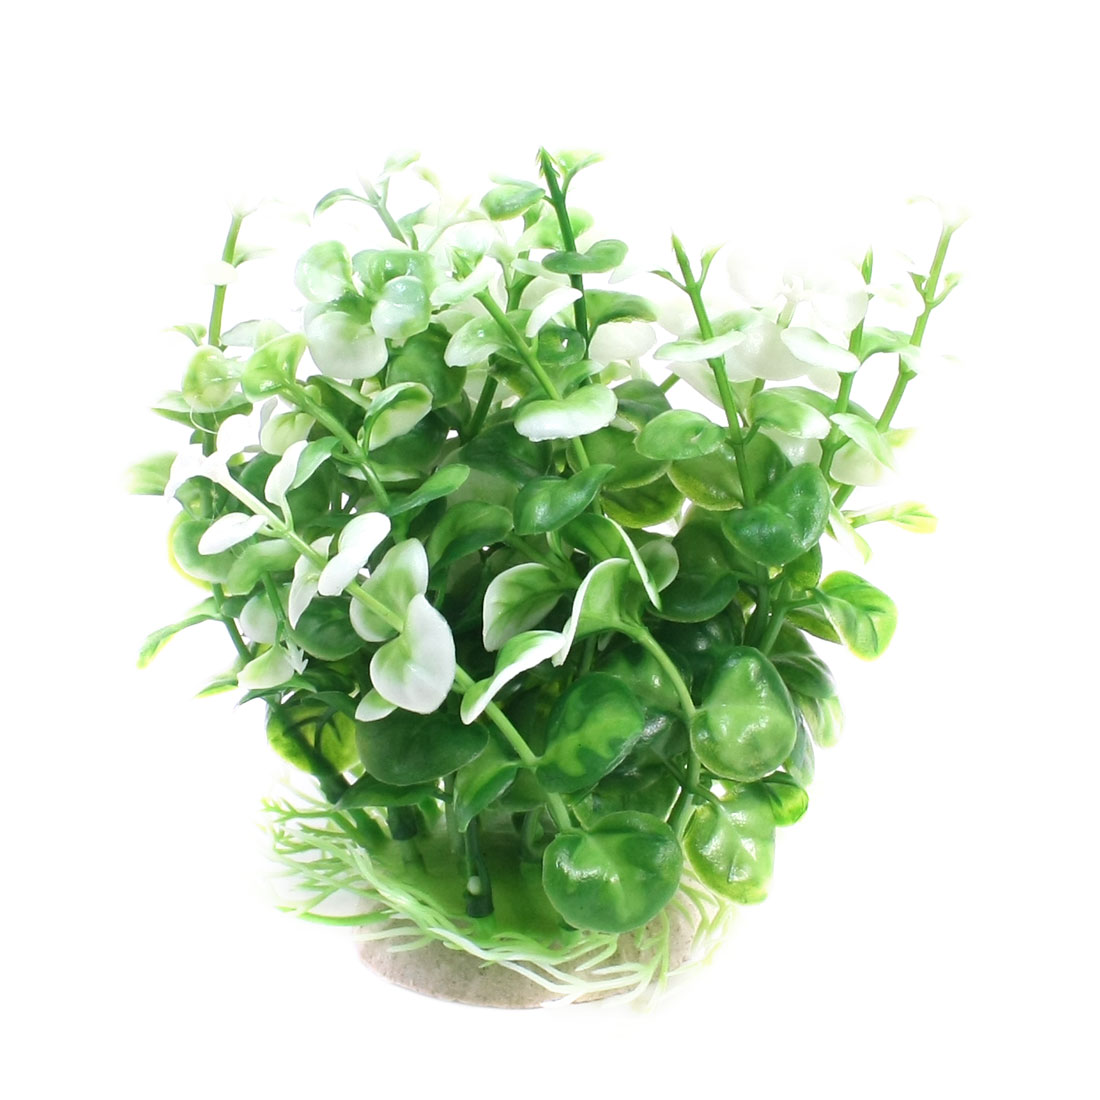 13cm High Green White Plastic Water Plant Glass for Fish Tank Aquarium Ornament